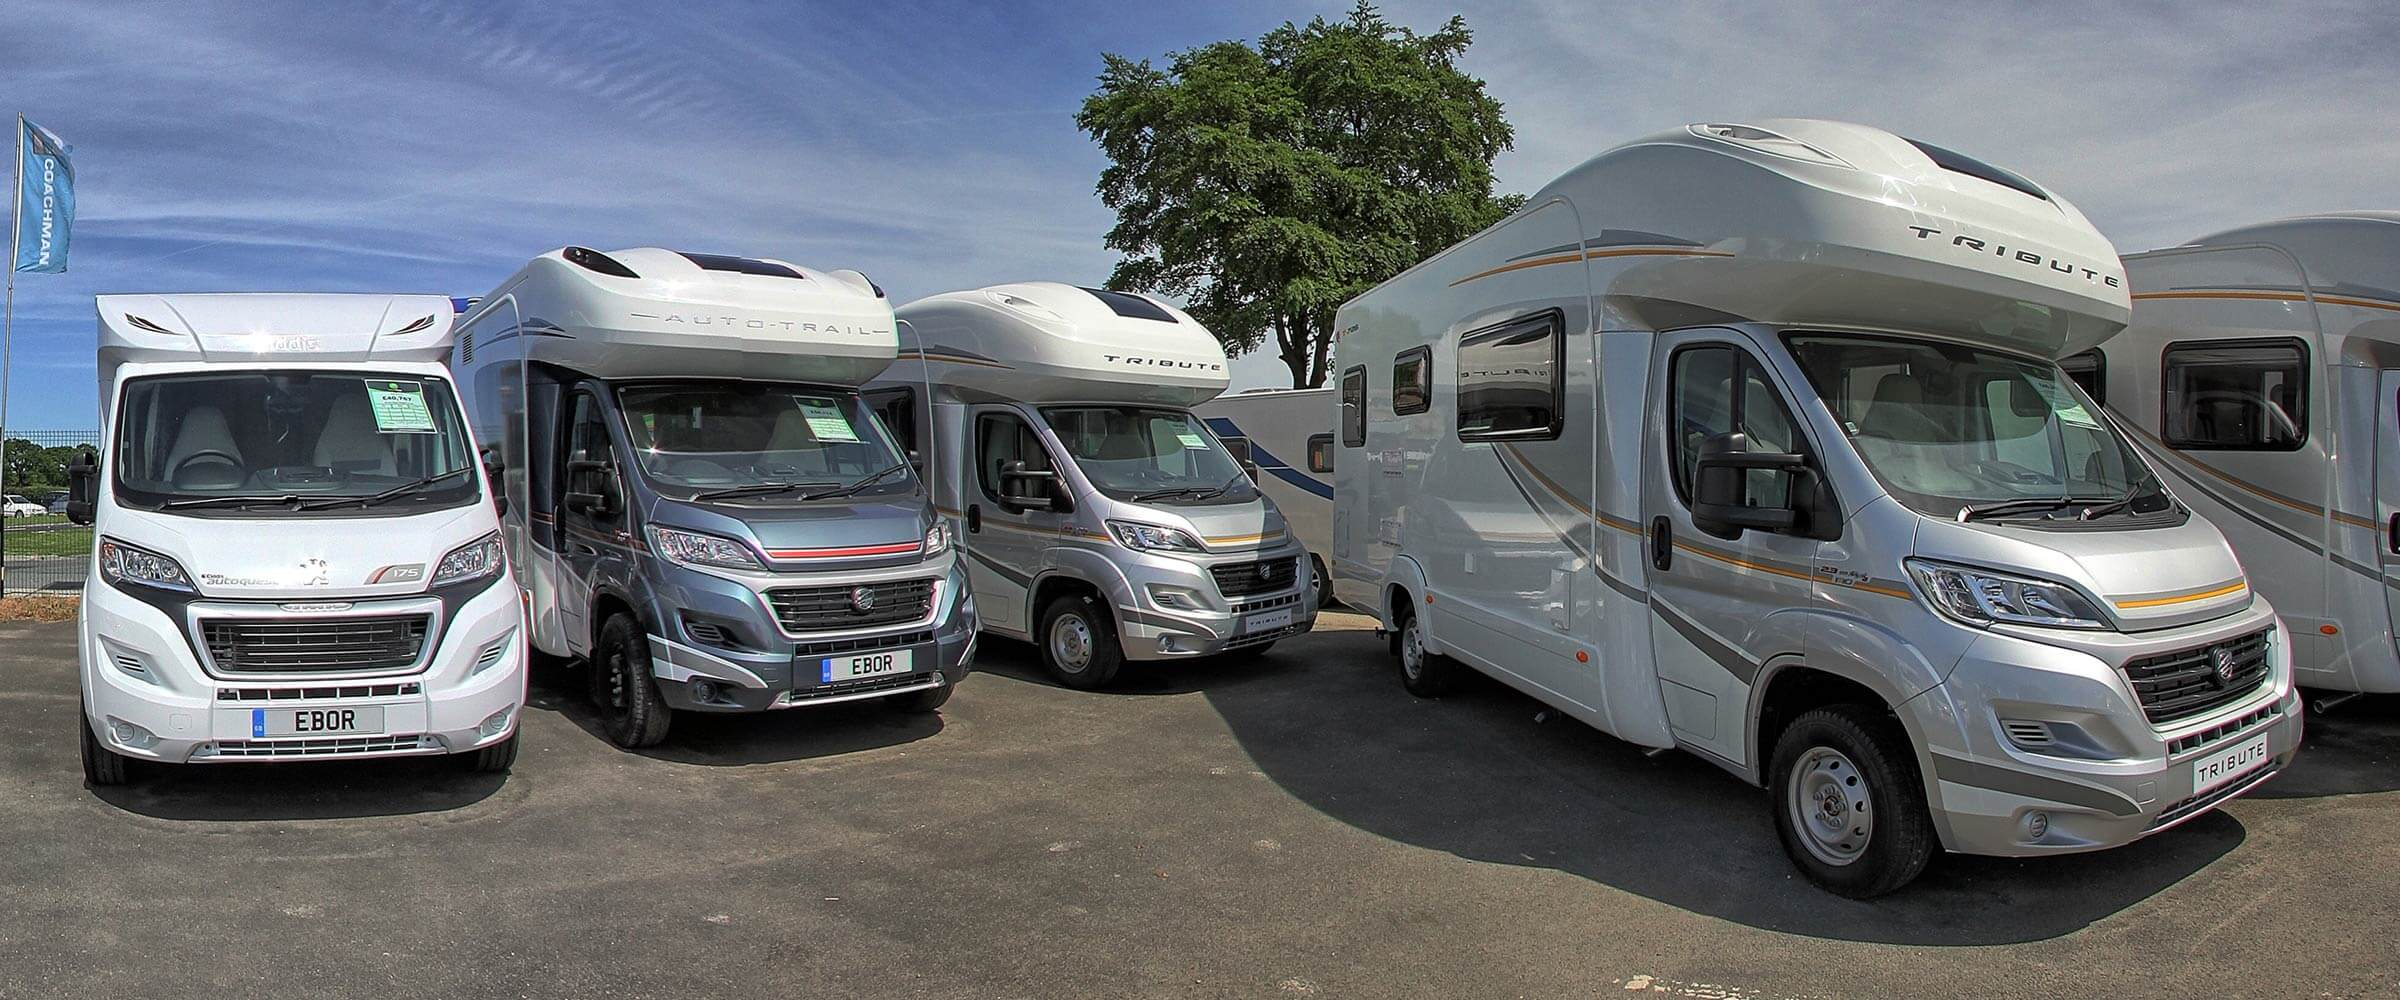 7a2addb34d1a Used Motorhomes for Sale